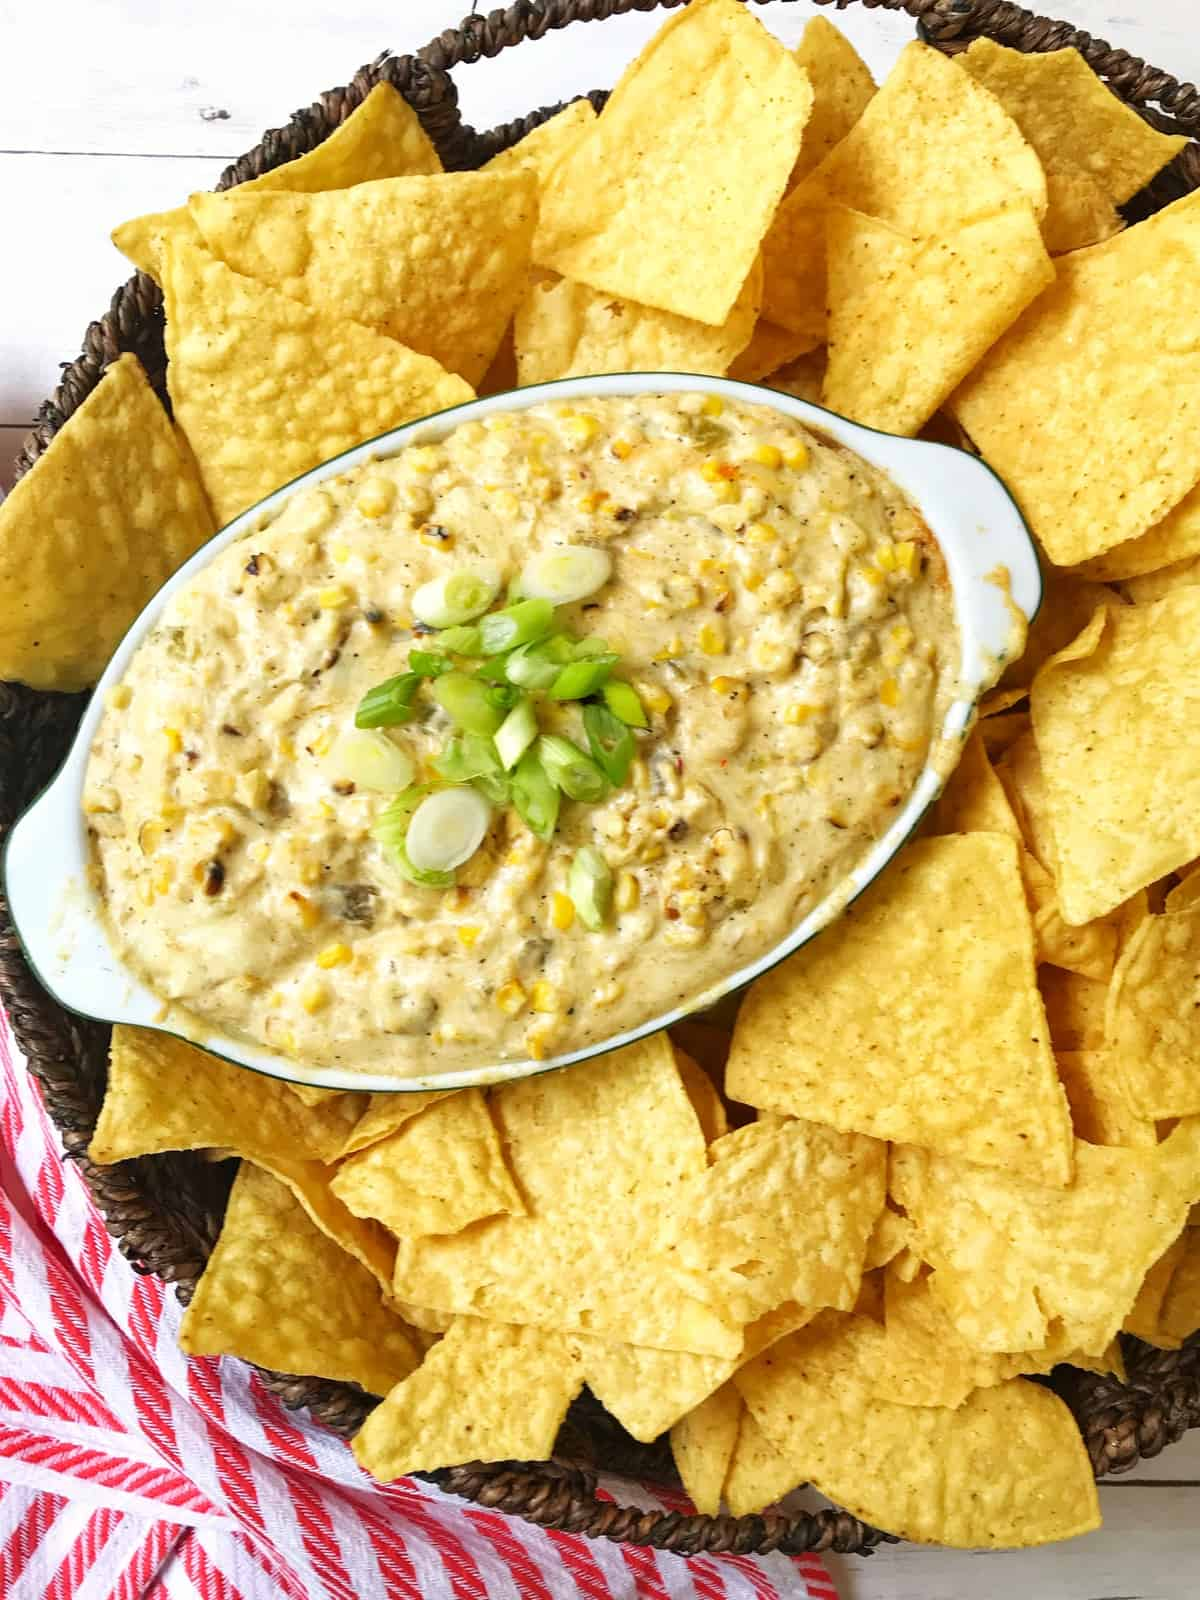 Corn Dip with tortilla chips